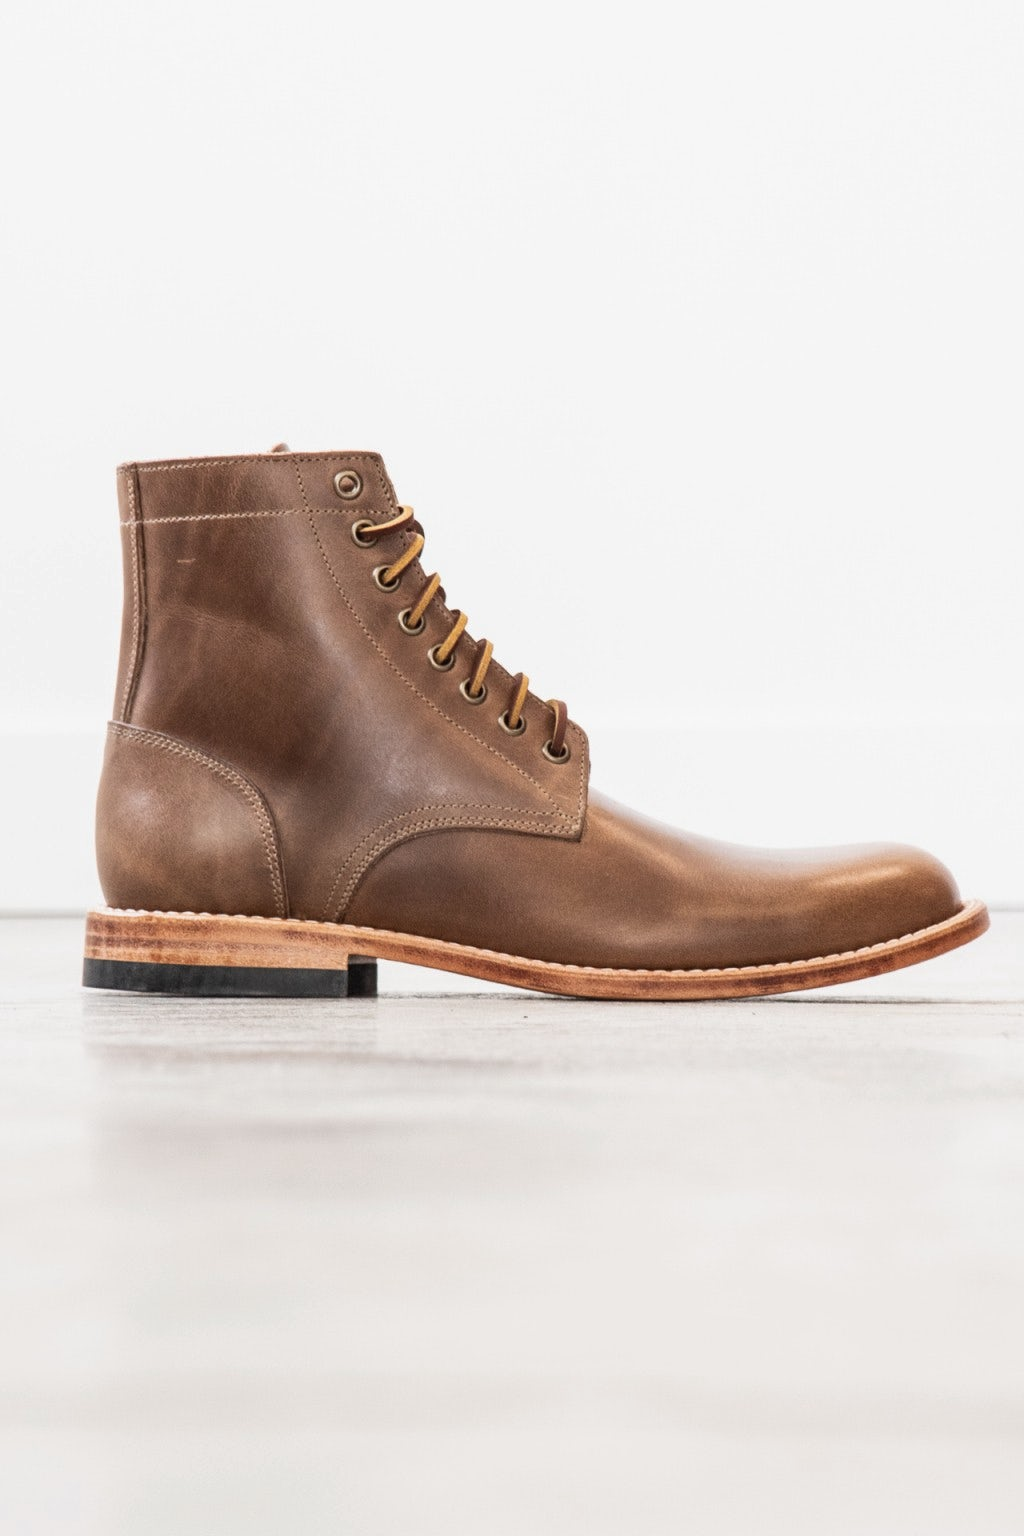 Oak Street Bootmakers Trench Boot Natural Chromexcel